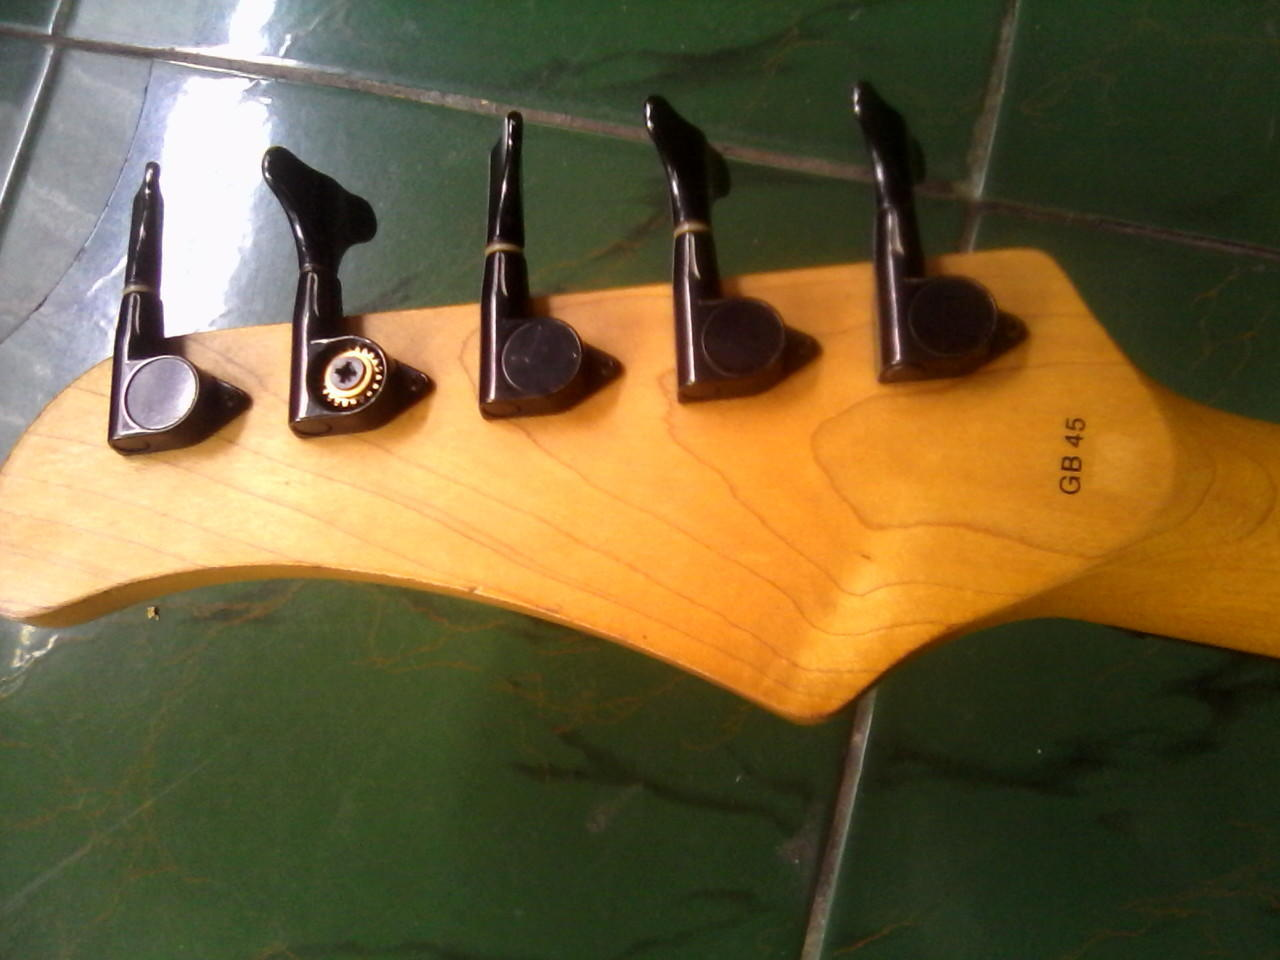 Bass Cort GB45 5string made in korea